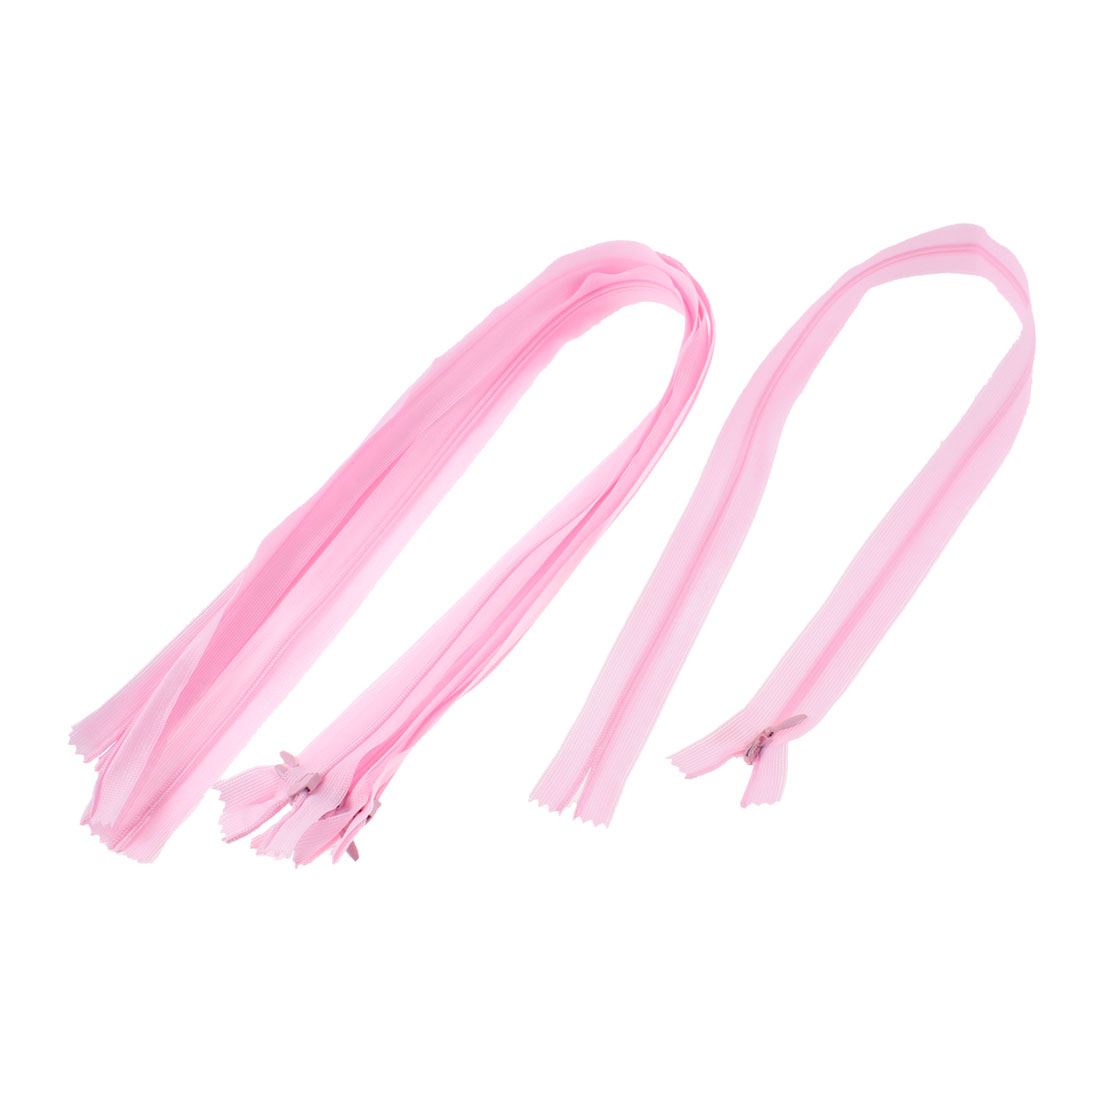 5 Pcs Pink Nylon Dress Zippers Tailor Sewing Tools 24-inch